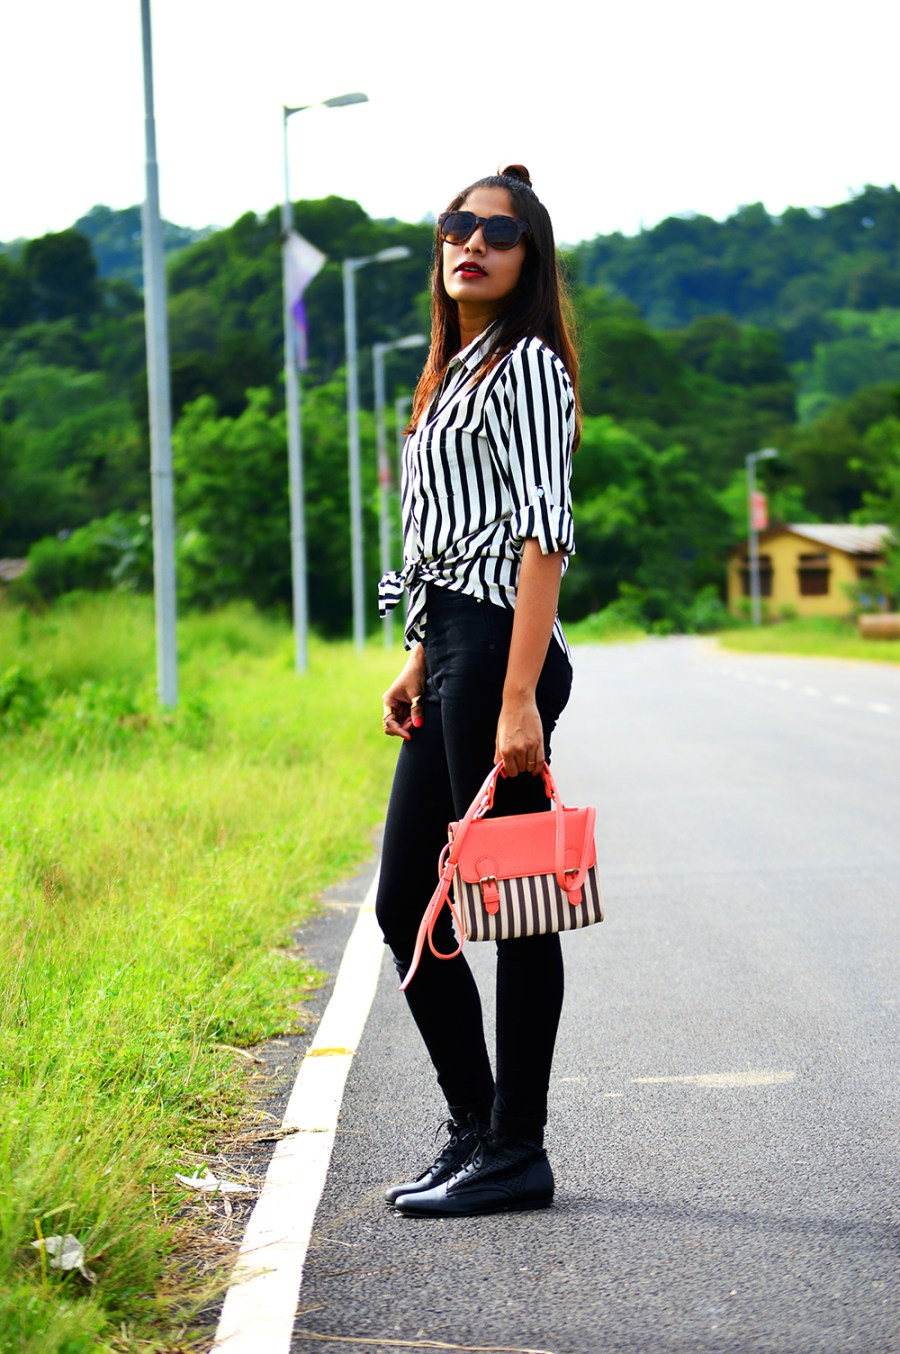 Fashion, Style, Indian Fashion Blogger, Fashion Blogger, Street Style, Summer Fashion, Stripes, Striped Shirt, Black High Wasit Jeans, Black Boots, Hairstyle, Style Over Coffee, Beauty, Sarmistha Goswami, Pankaj Jyoti Barua-2